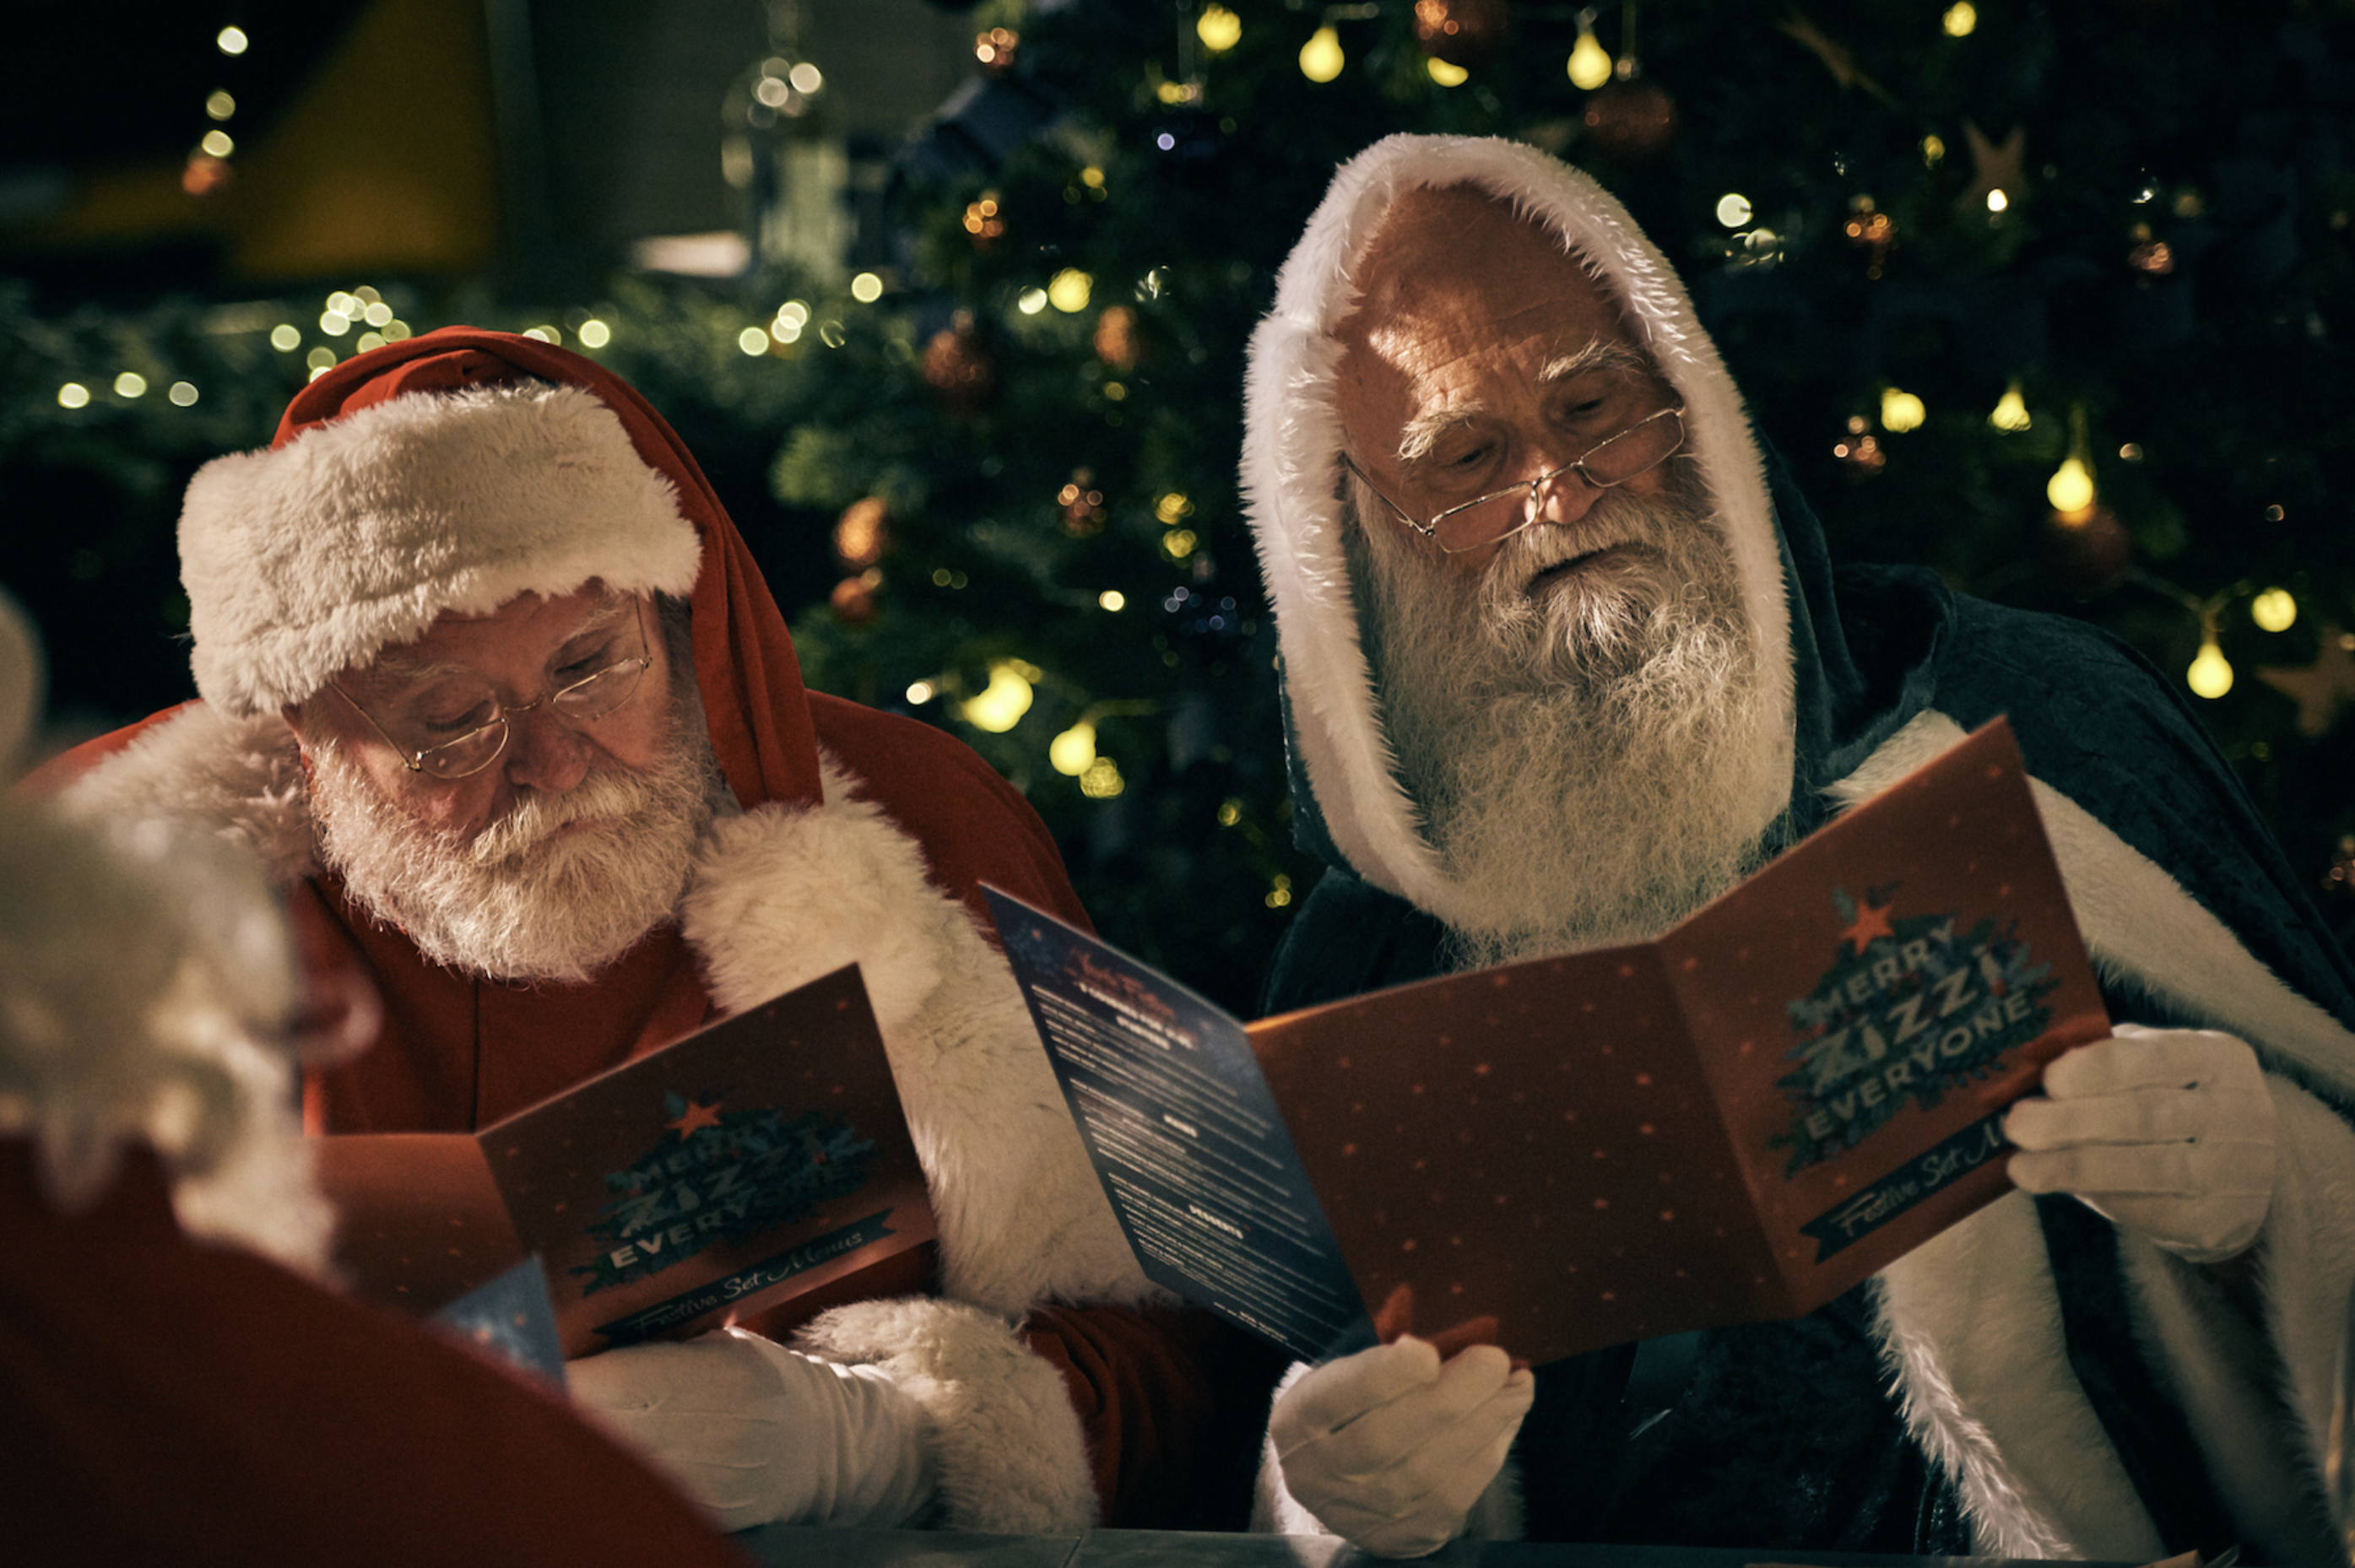 zizzi vegan santa advert